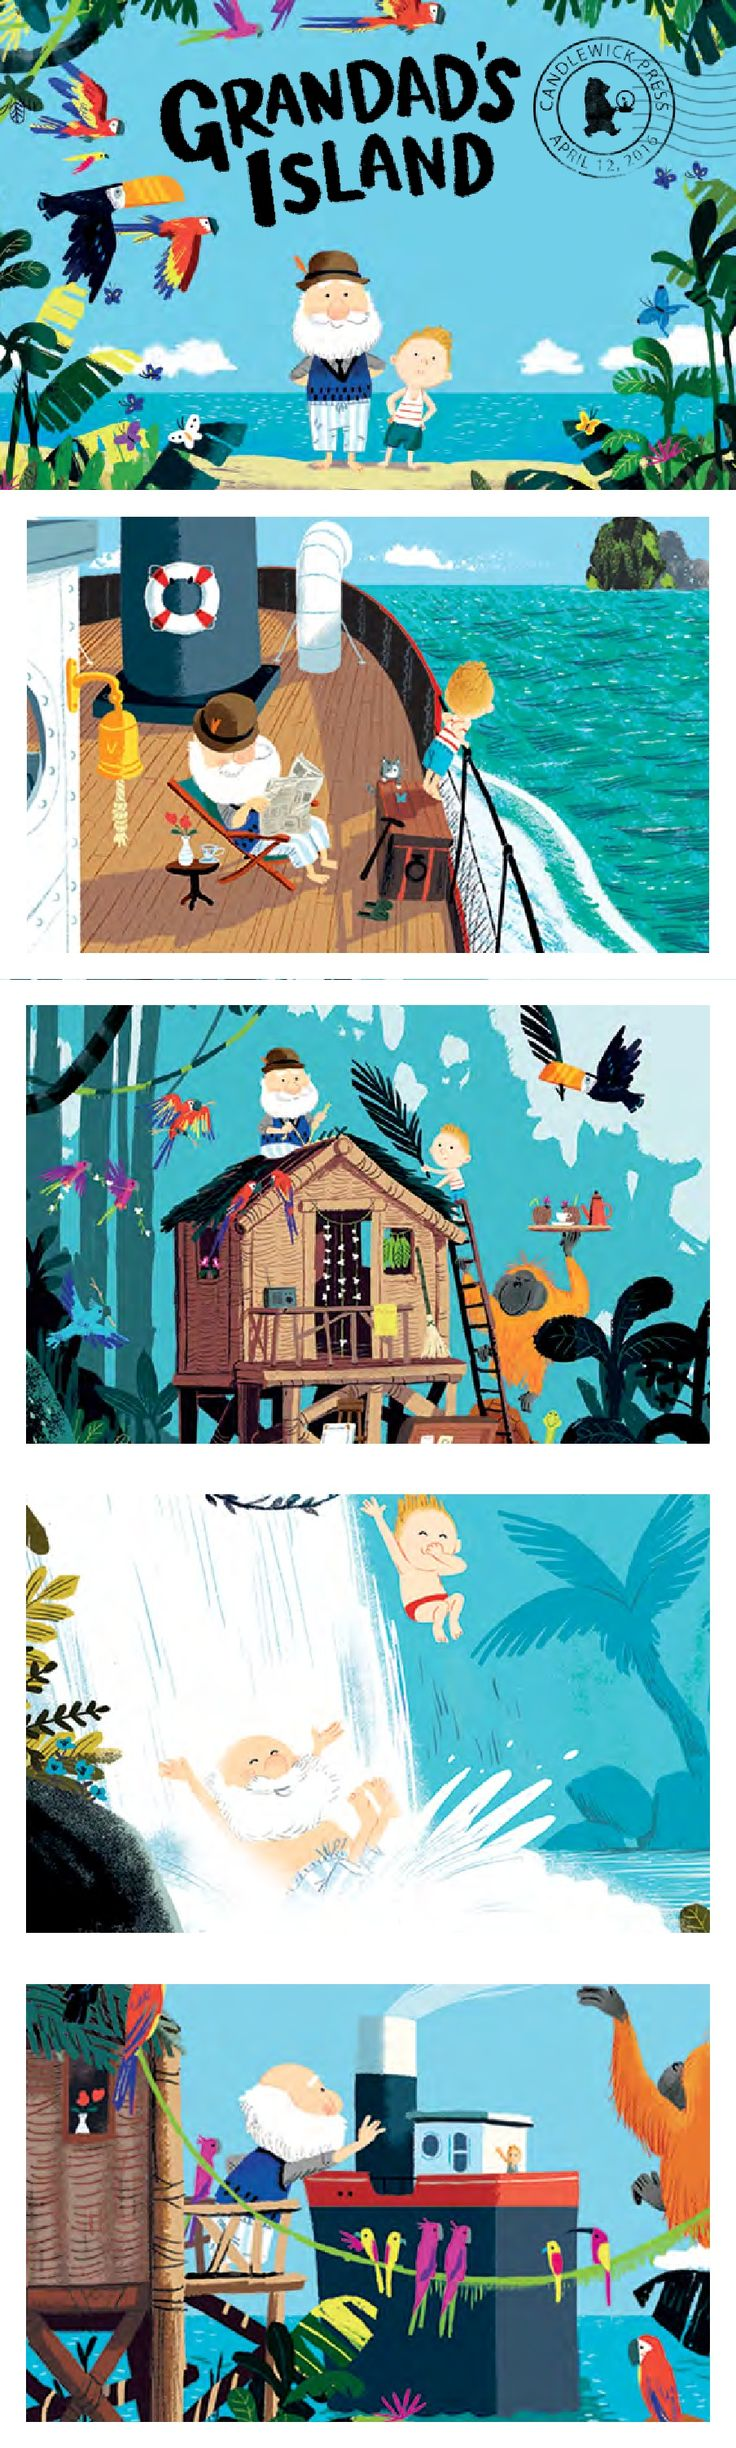 Grandad's Island by Benji Davies Press Kit